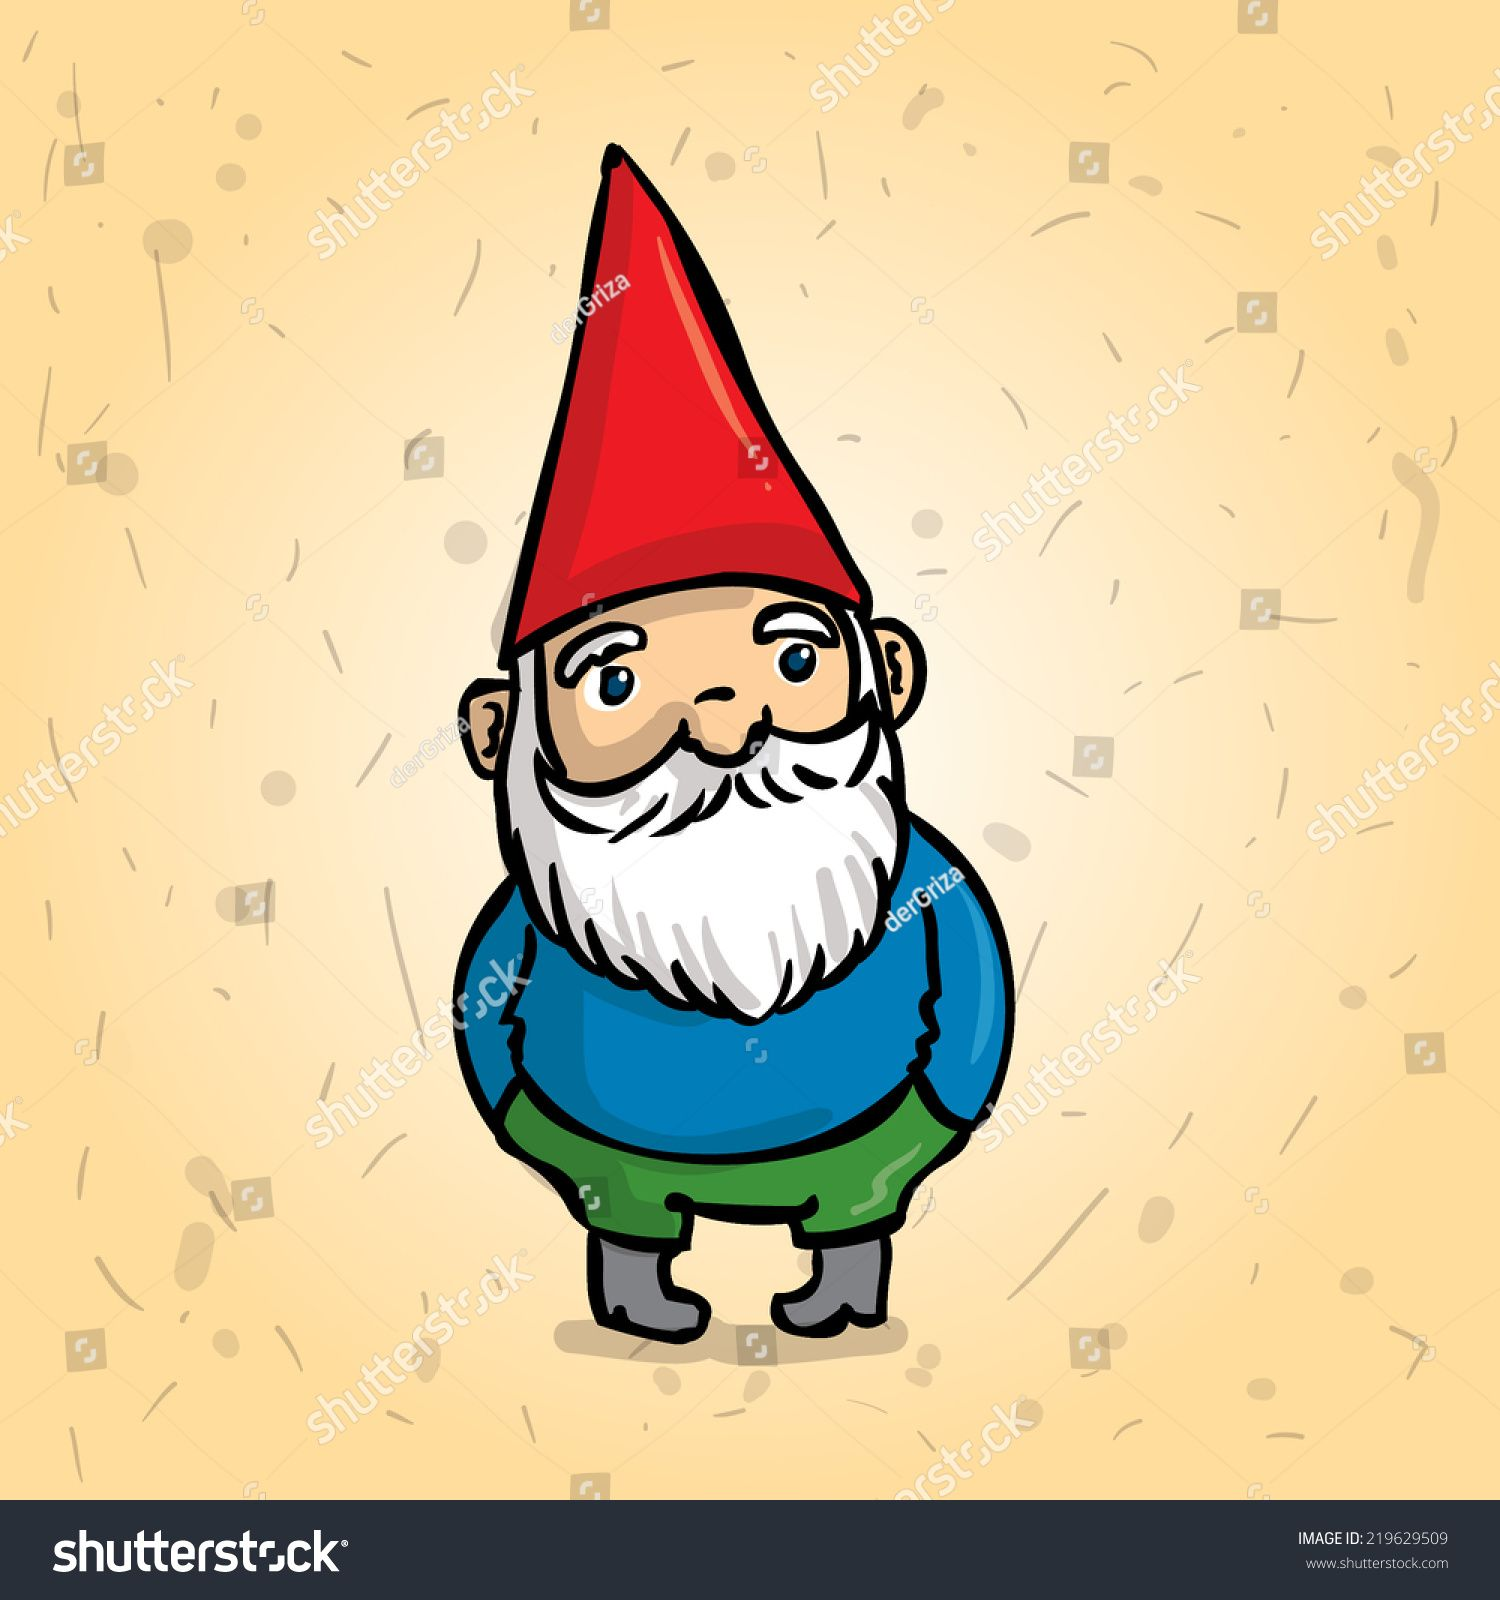 clipart free download Gnome clipart simple garden. Image result for cute